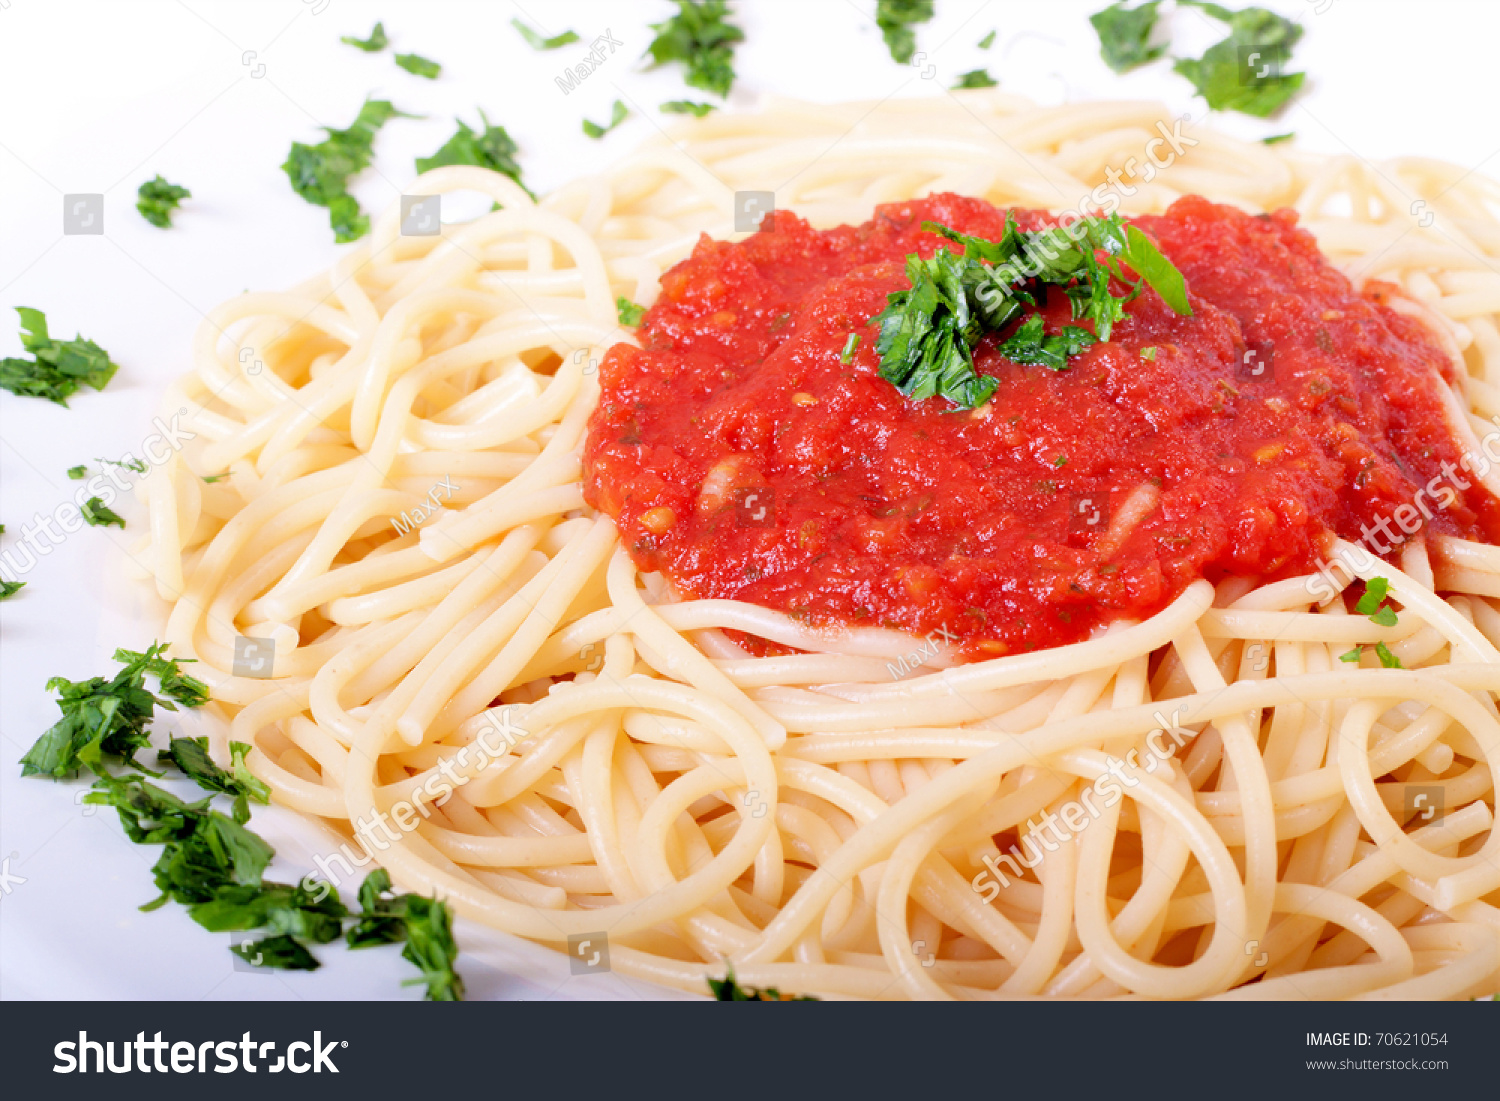 how to make hot tomato sauce